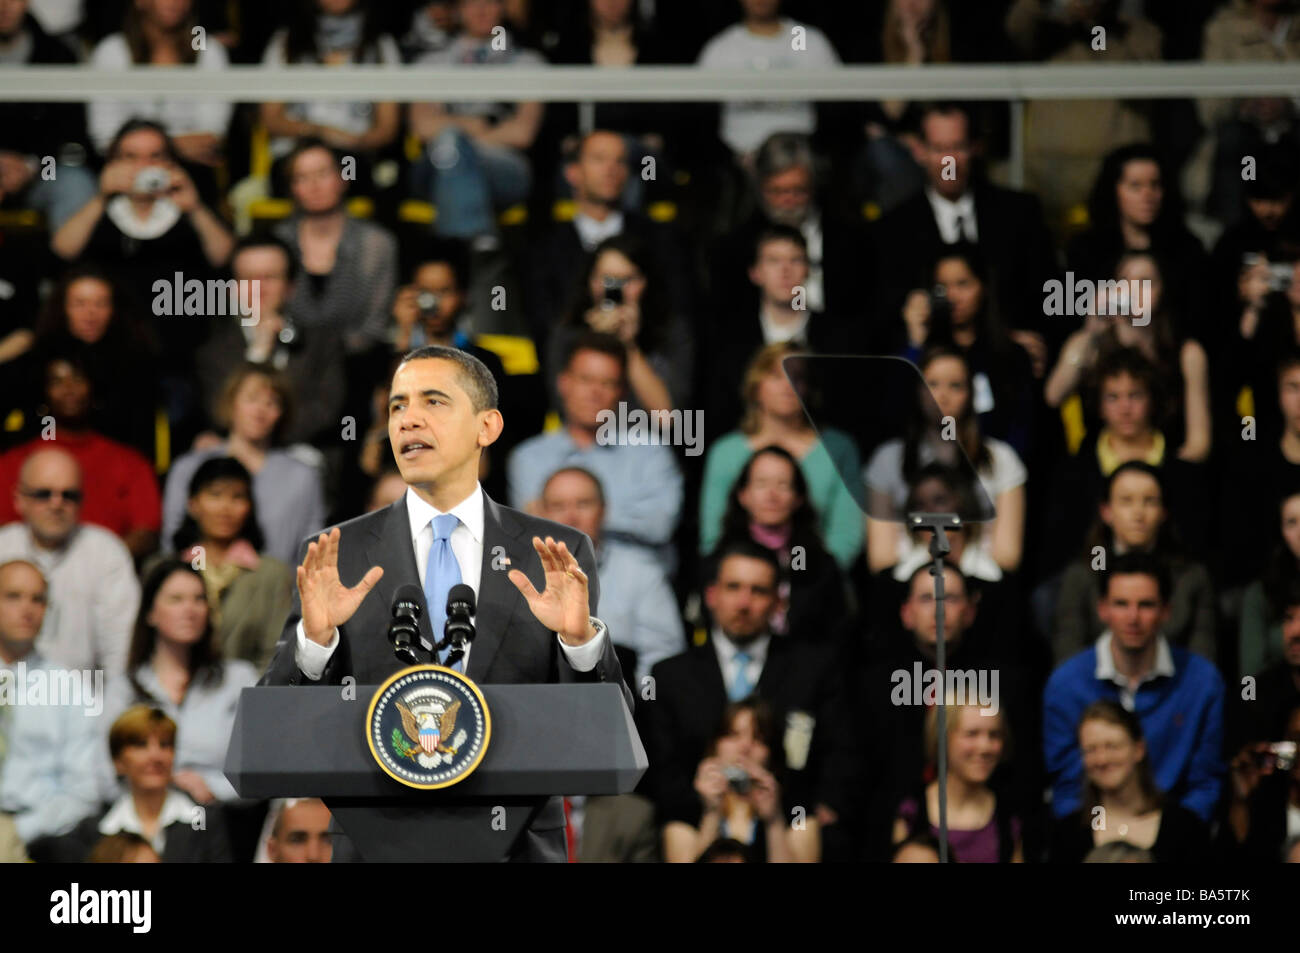 US president Barack Obama talking during a conference organised at the NATO summit in Strasbourg, France. - Stock Image